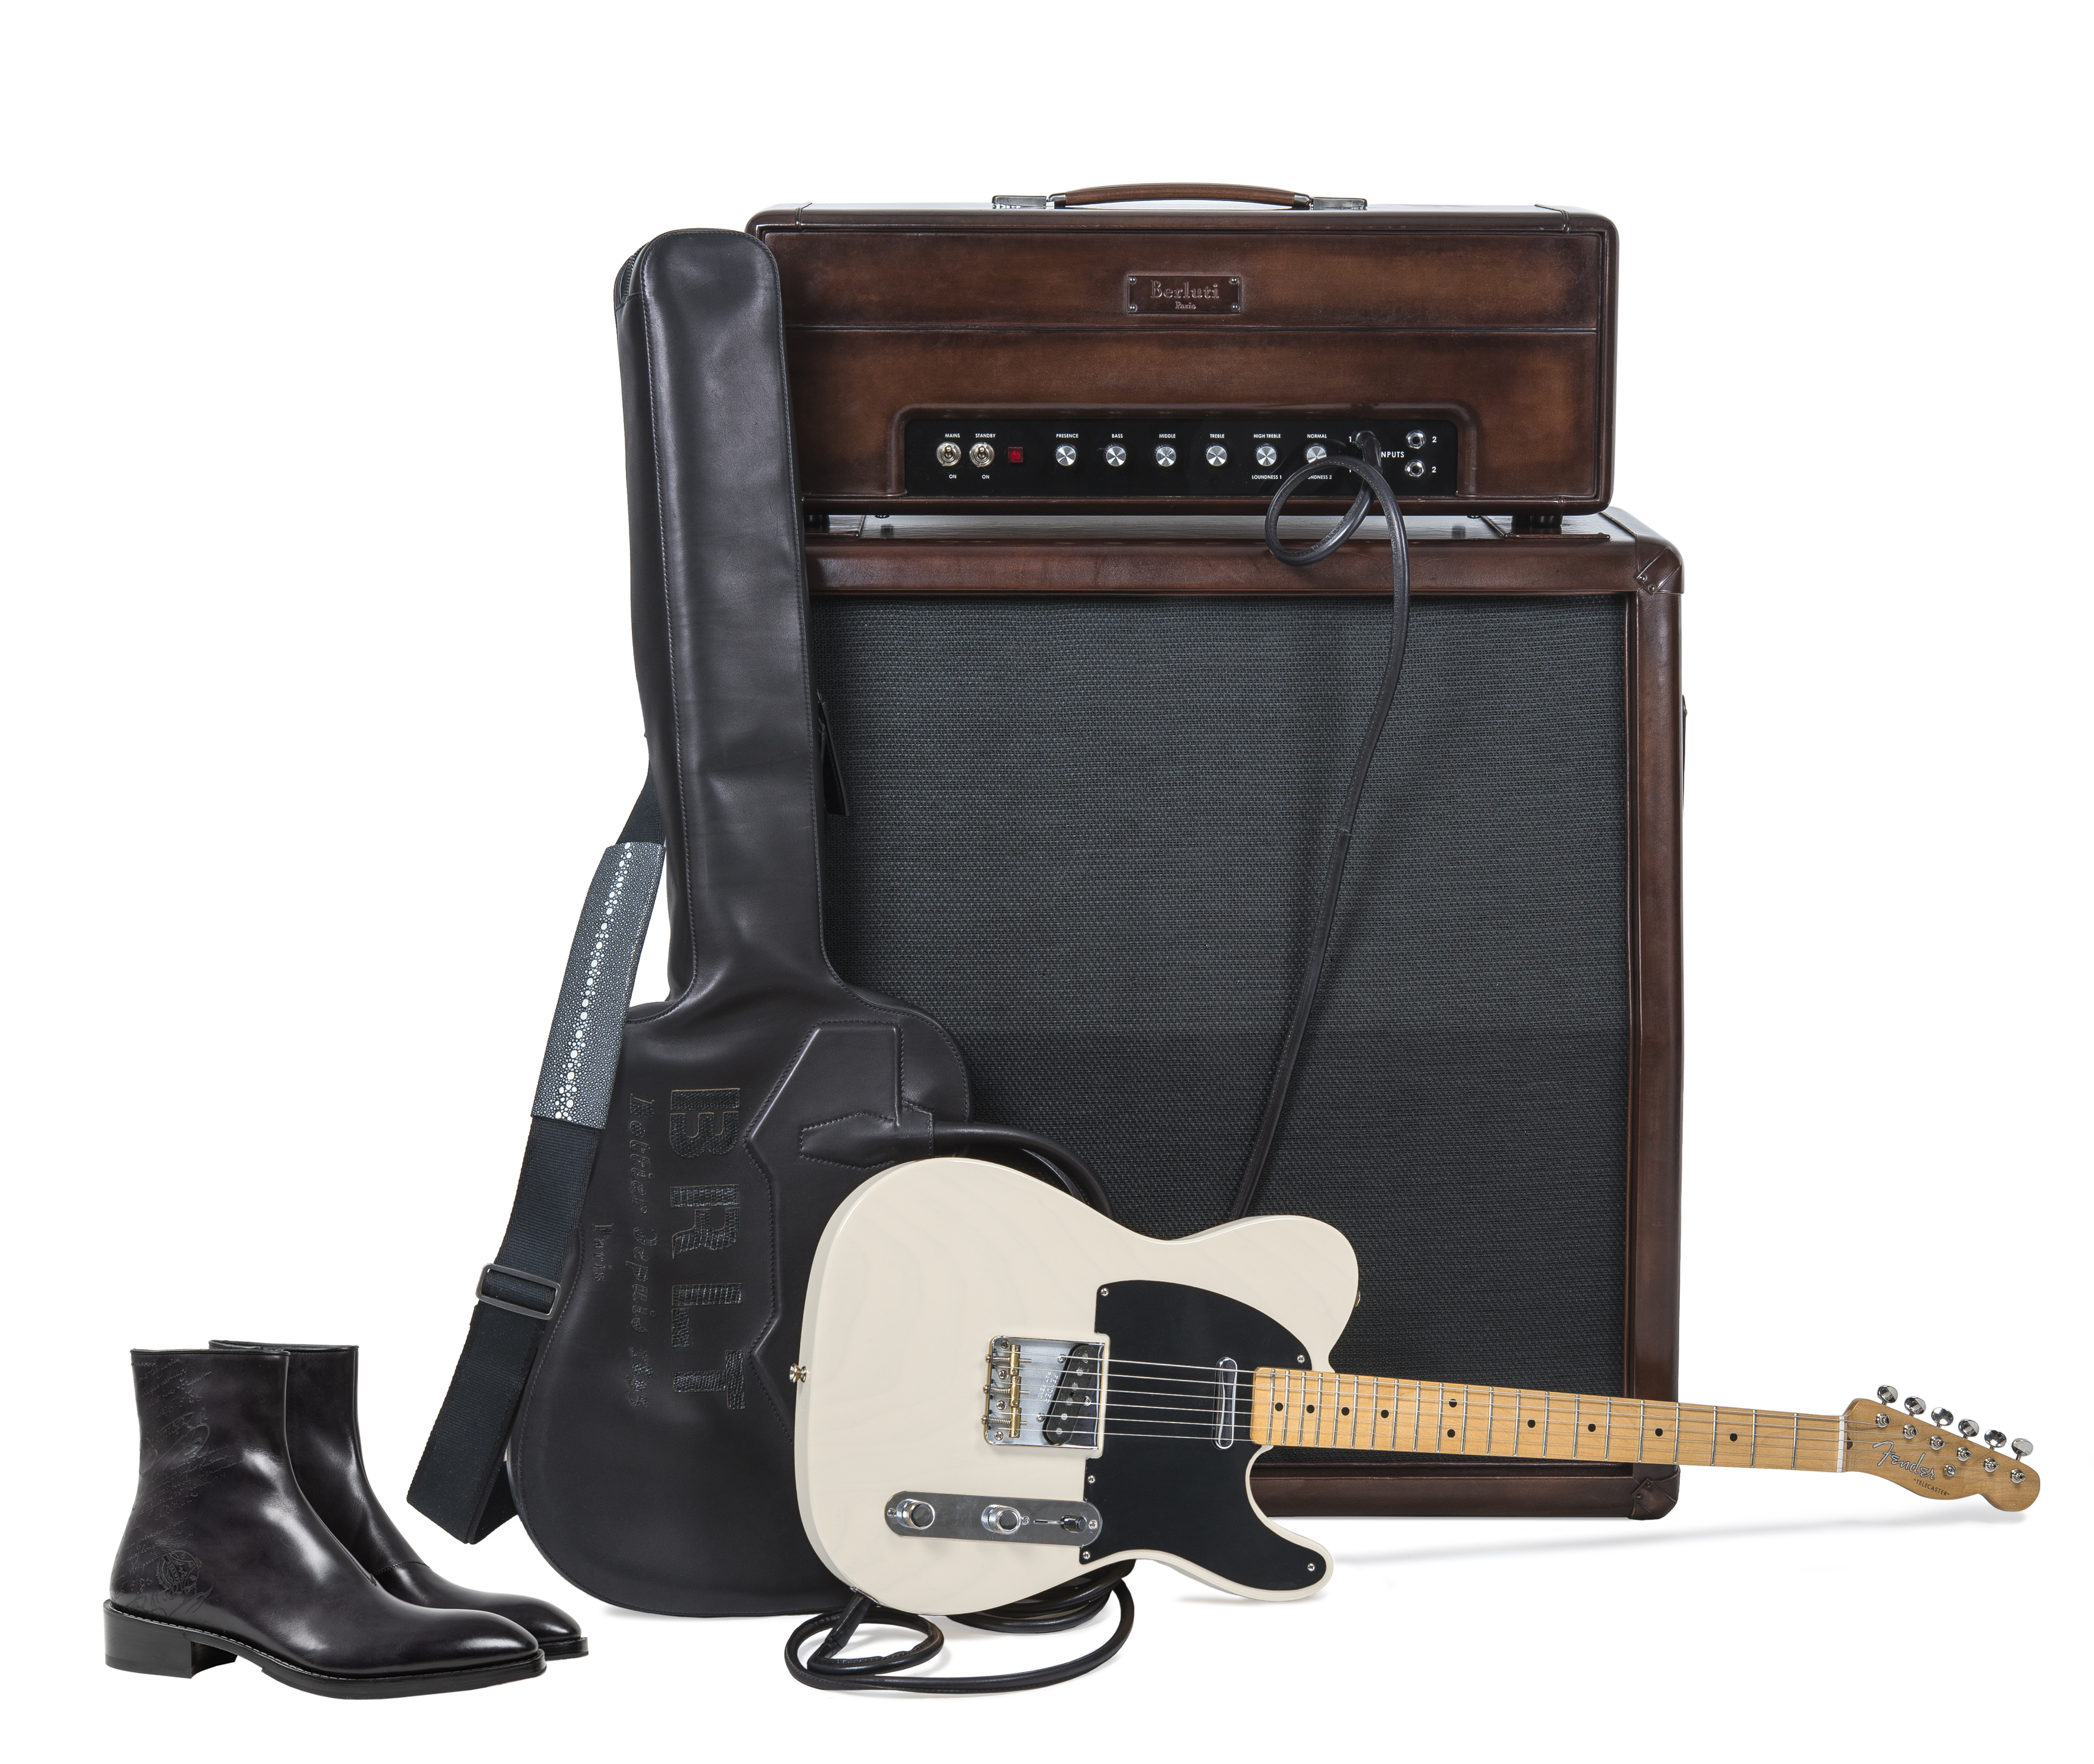 View full screen - View 1 of Lot 9. Berluti | Amplifier, Guitar with Case and Boots (Ampli, Guitare avec Housse et Bottine) [5 Items / Articles].